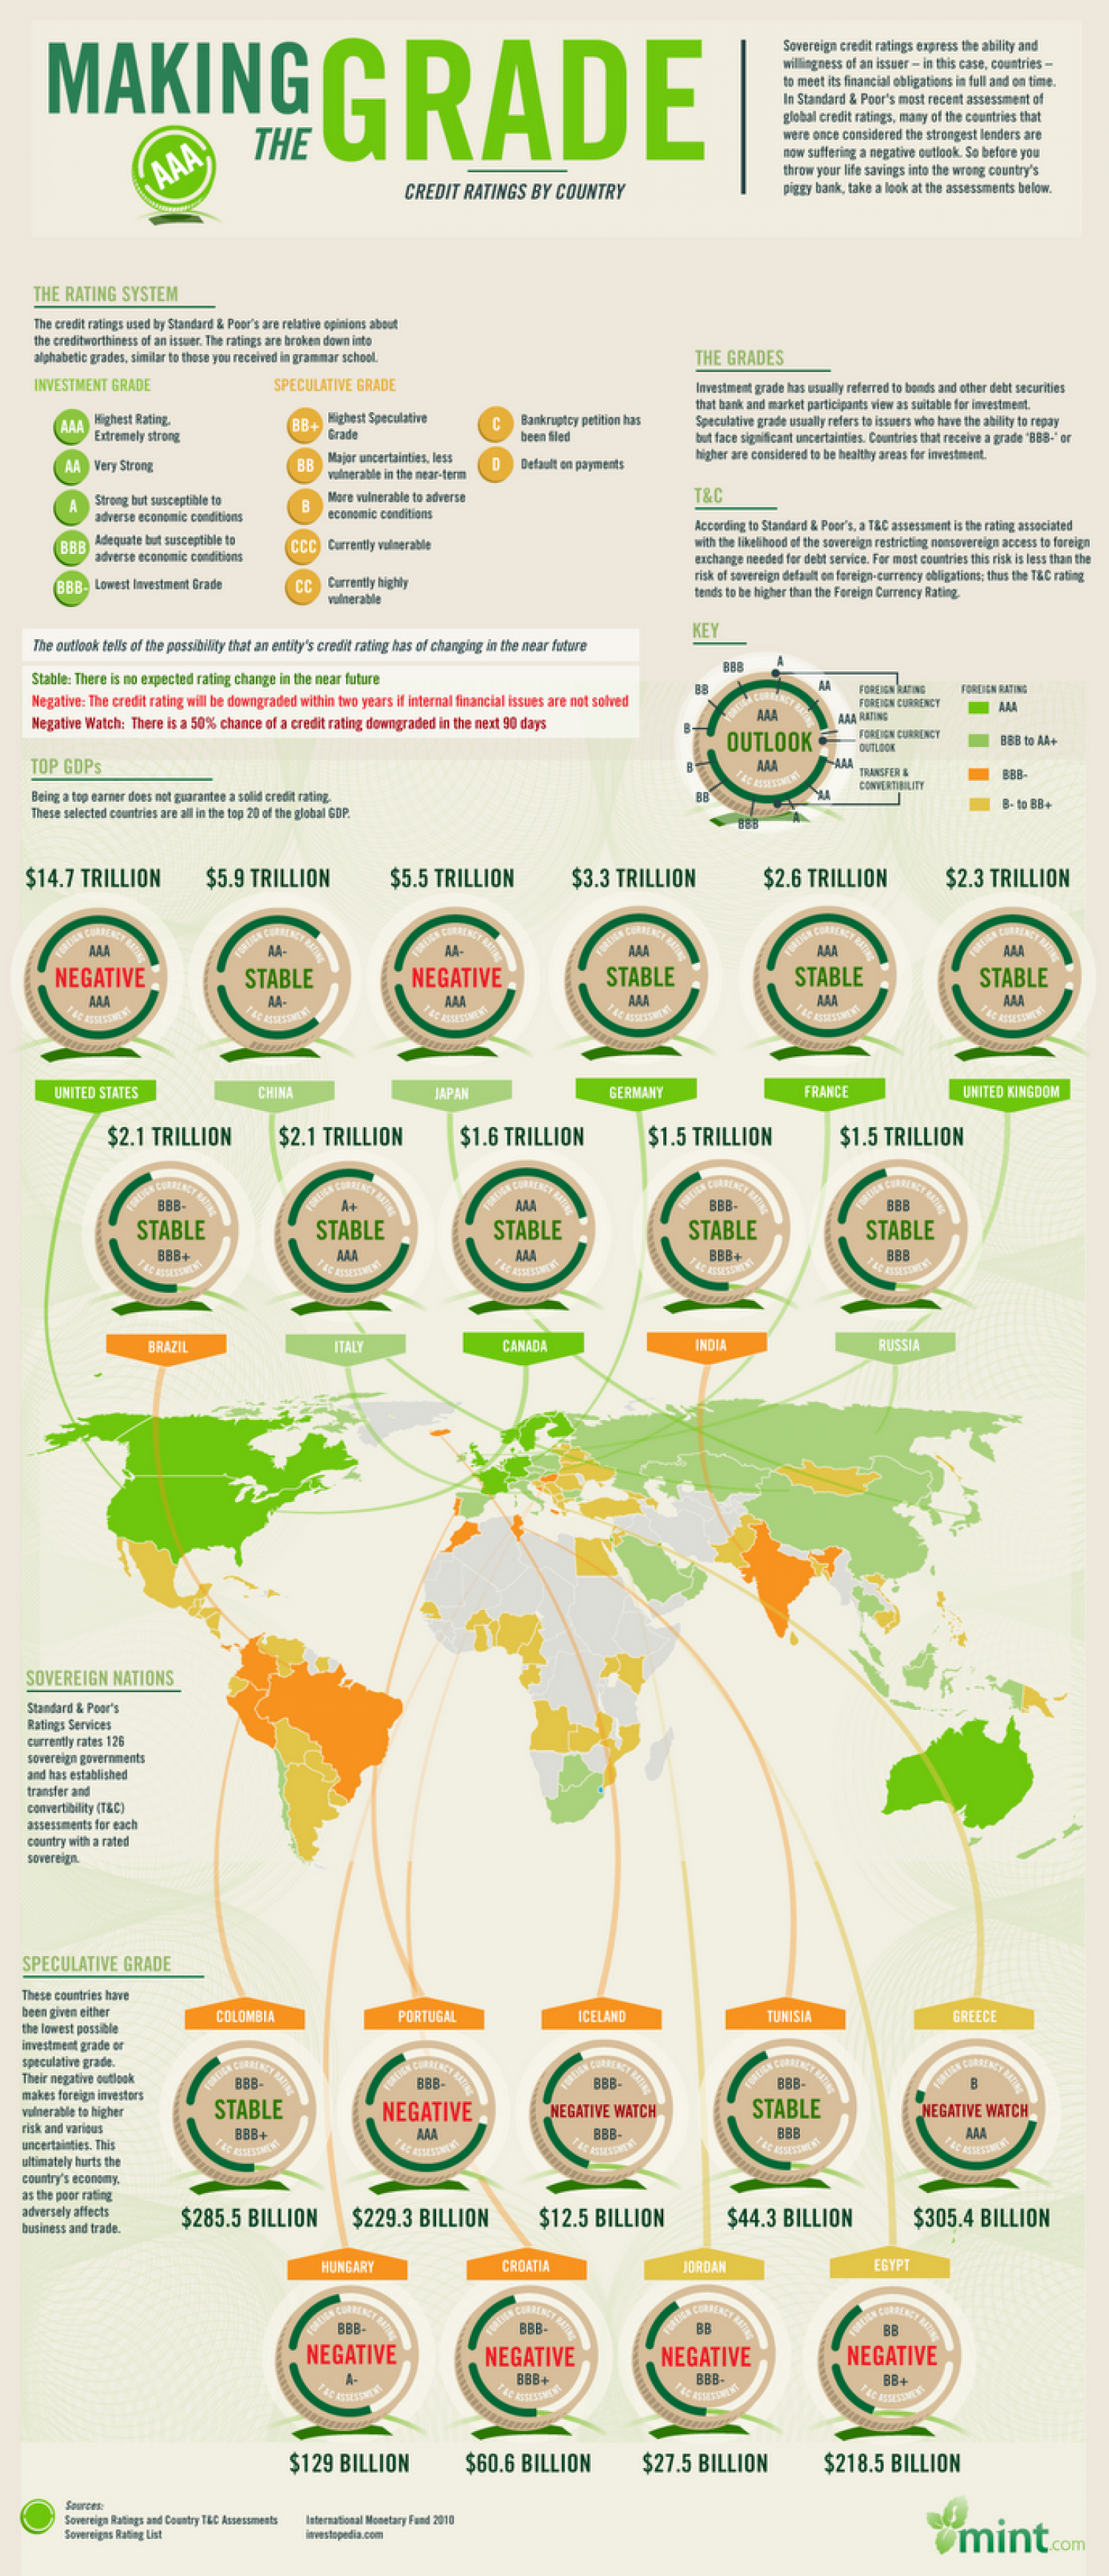 Making the Grade: A Guide to S&P's Latest Credit Ratings by Country Infographic